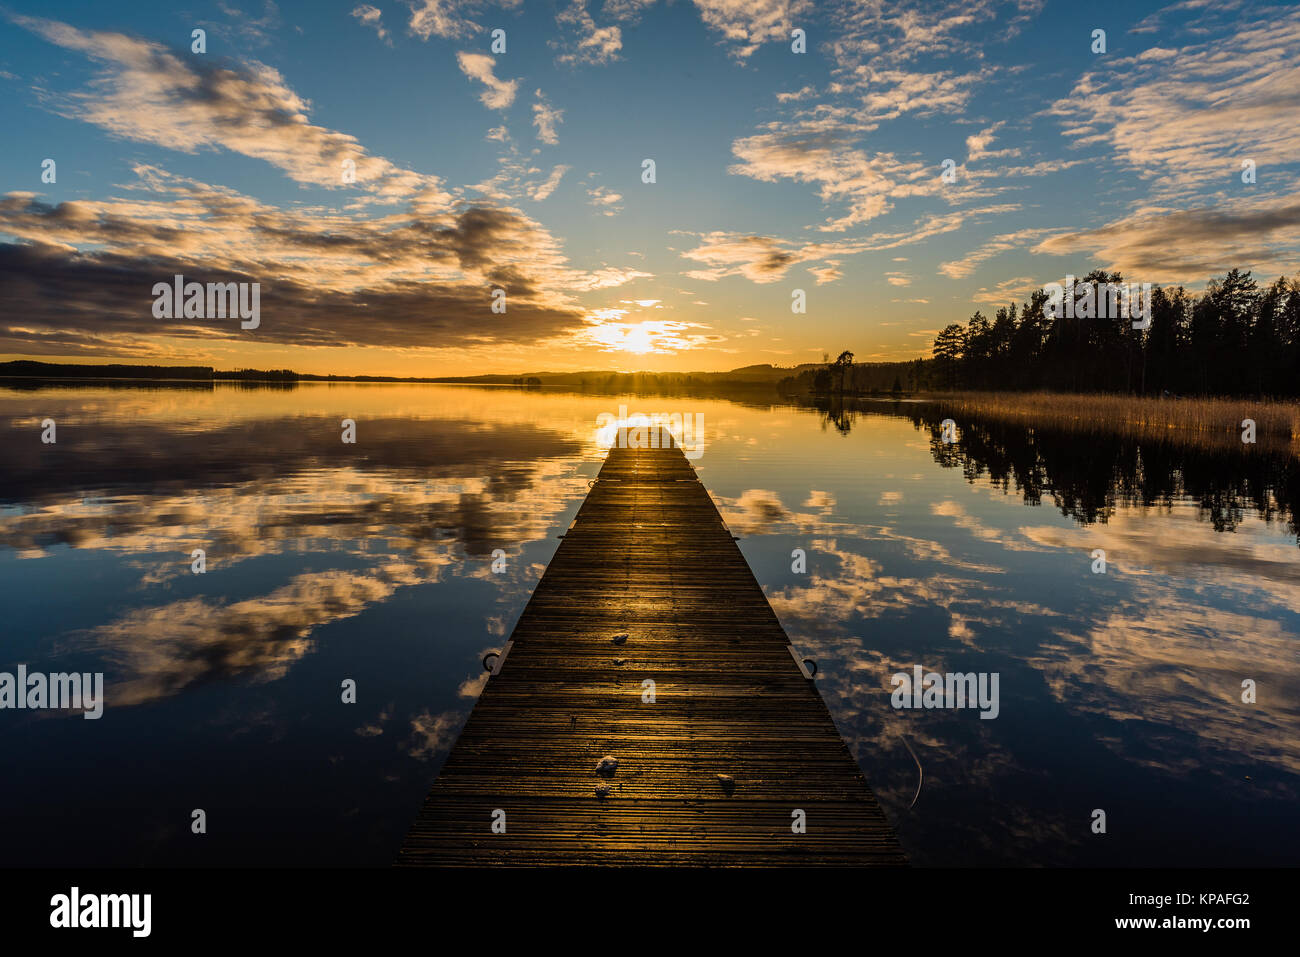 Sunset over a lake in Nykroppa, Filipstad, Sweden with a jetty - Stock Image